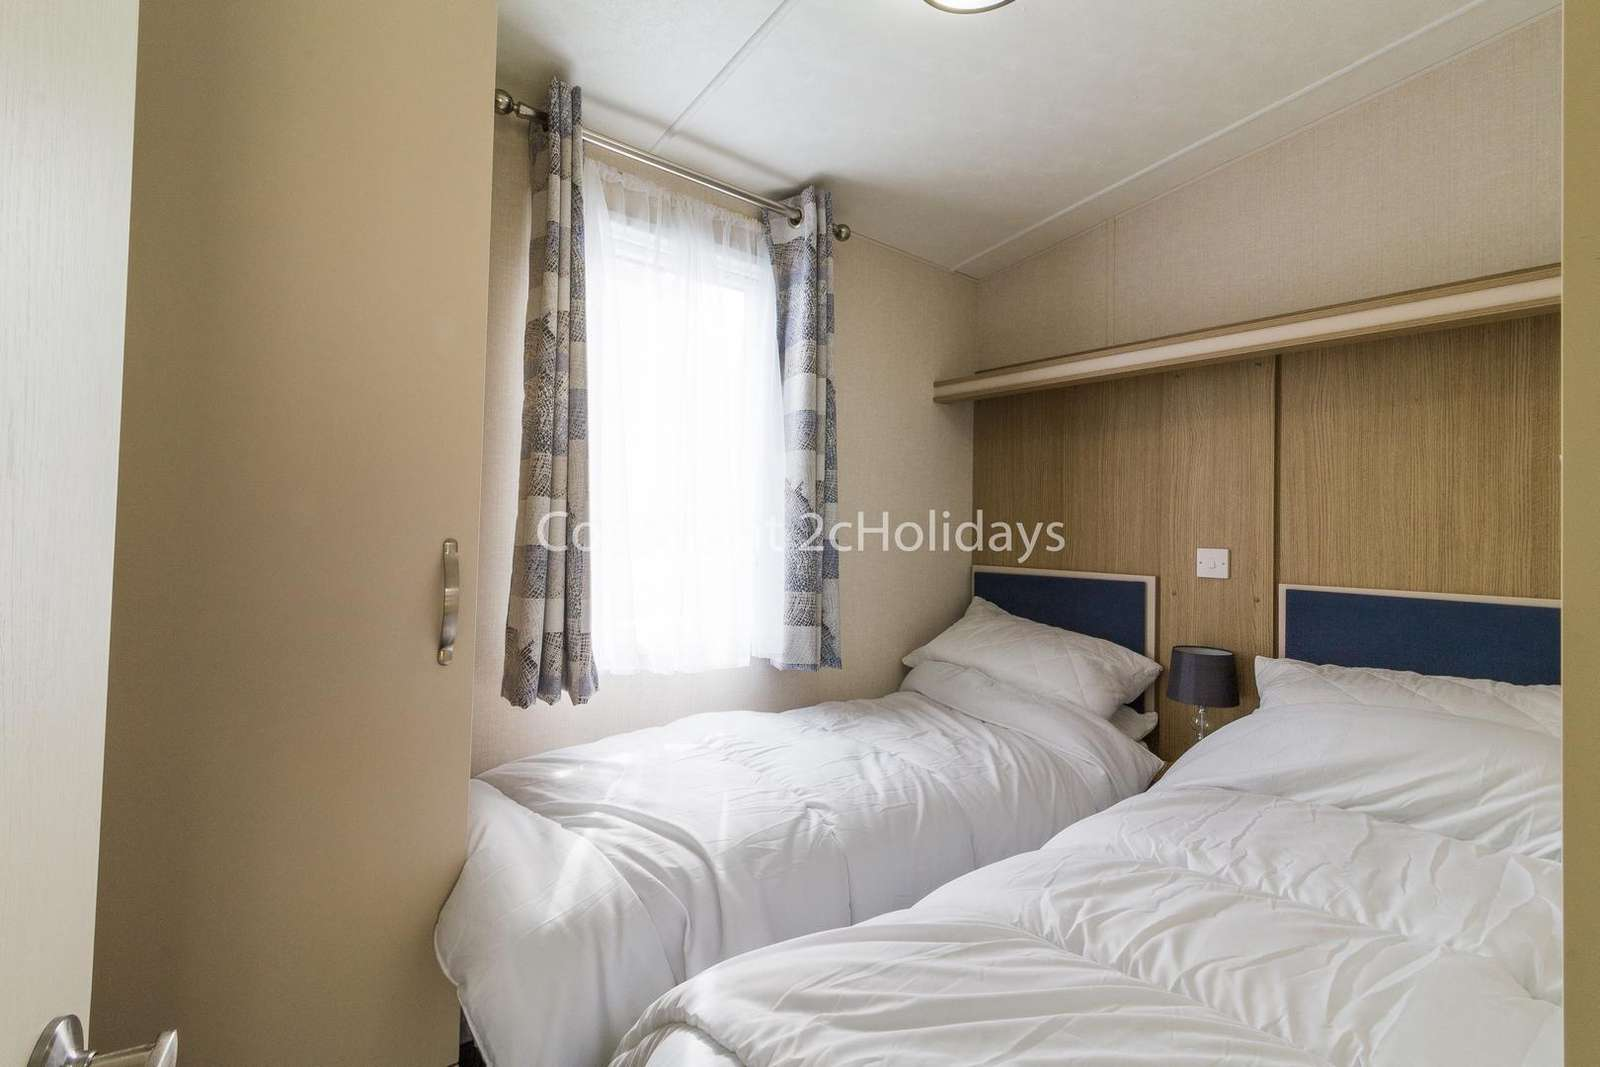 Why not visit Azure Seas Holiday Village and make memories with the family?